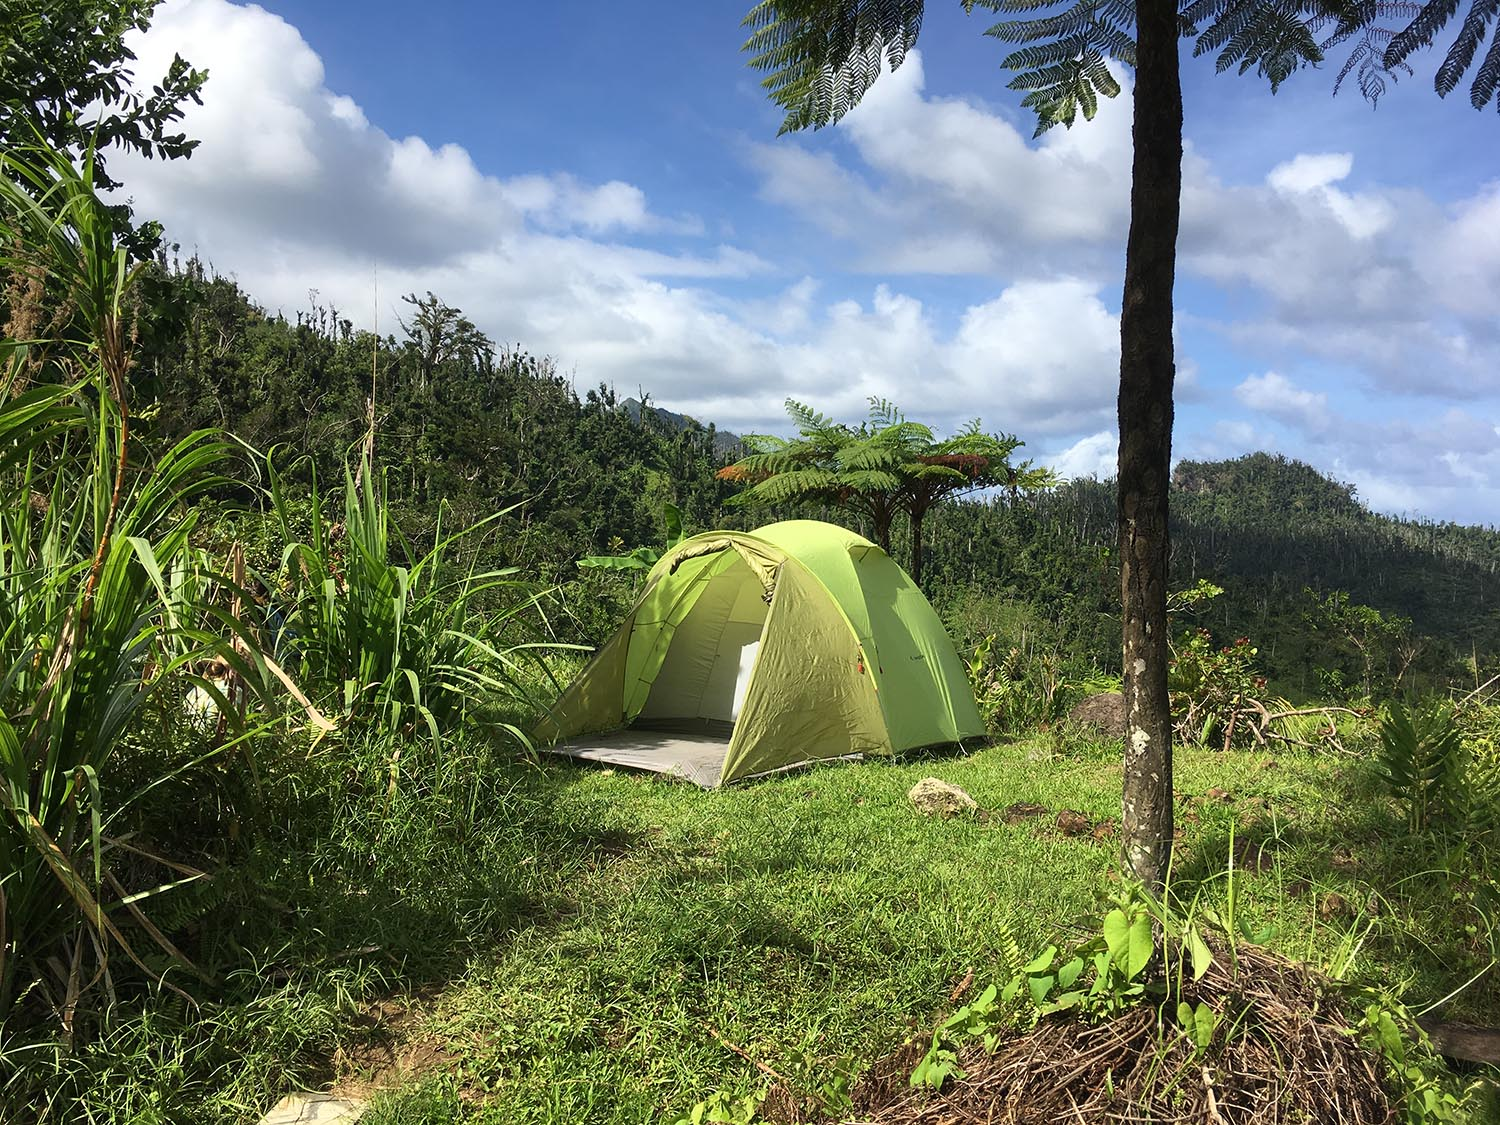 Hammock tent rental for camping guests and WorkAway in Dominica.